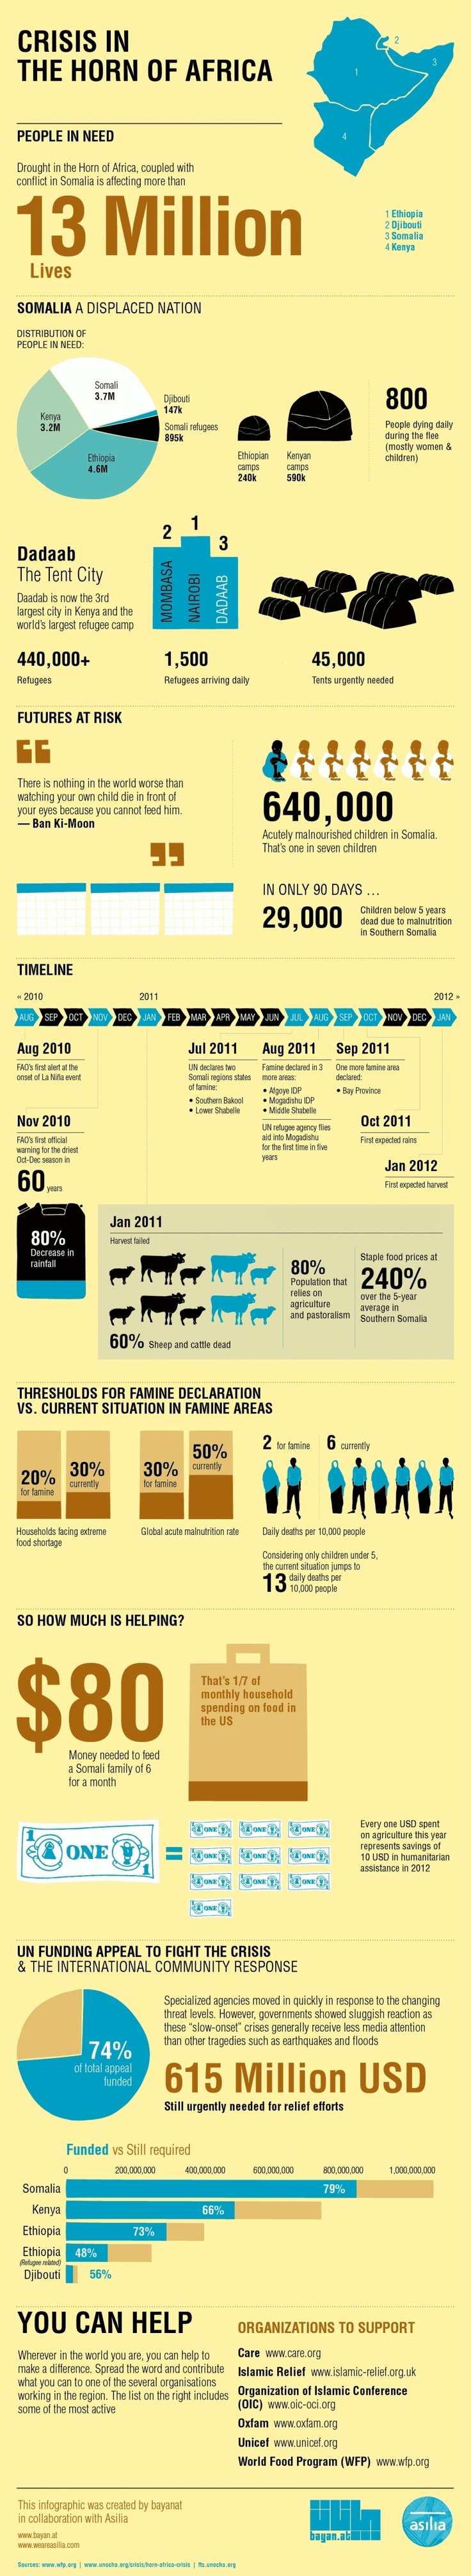 Crisis in the horn of Africa #Infographic